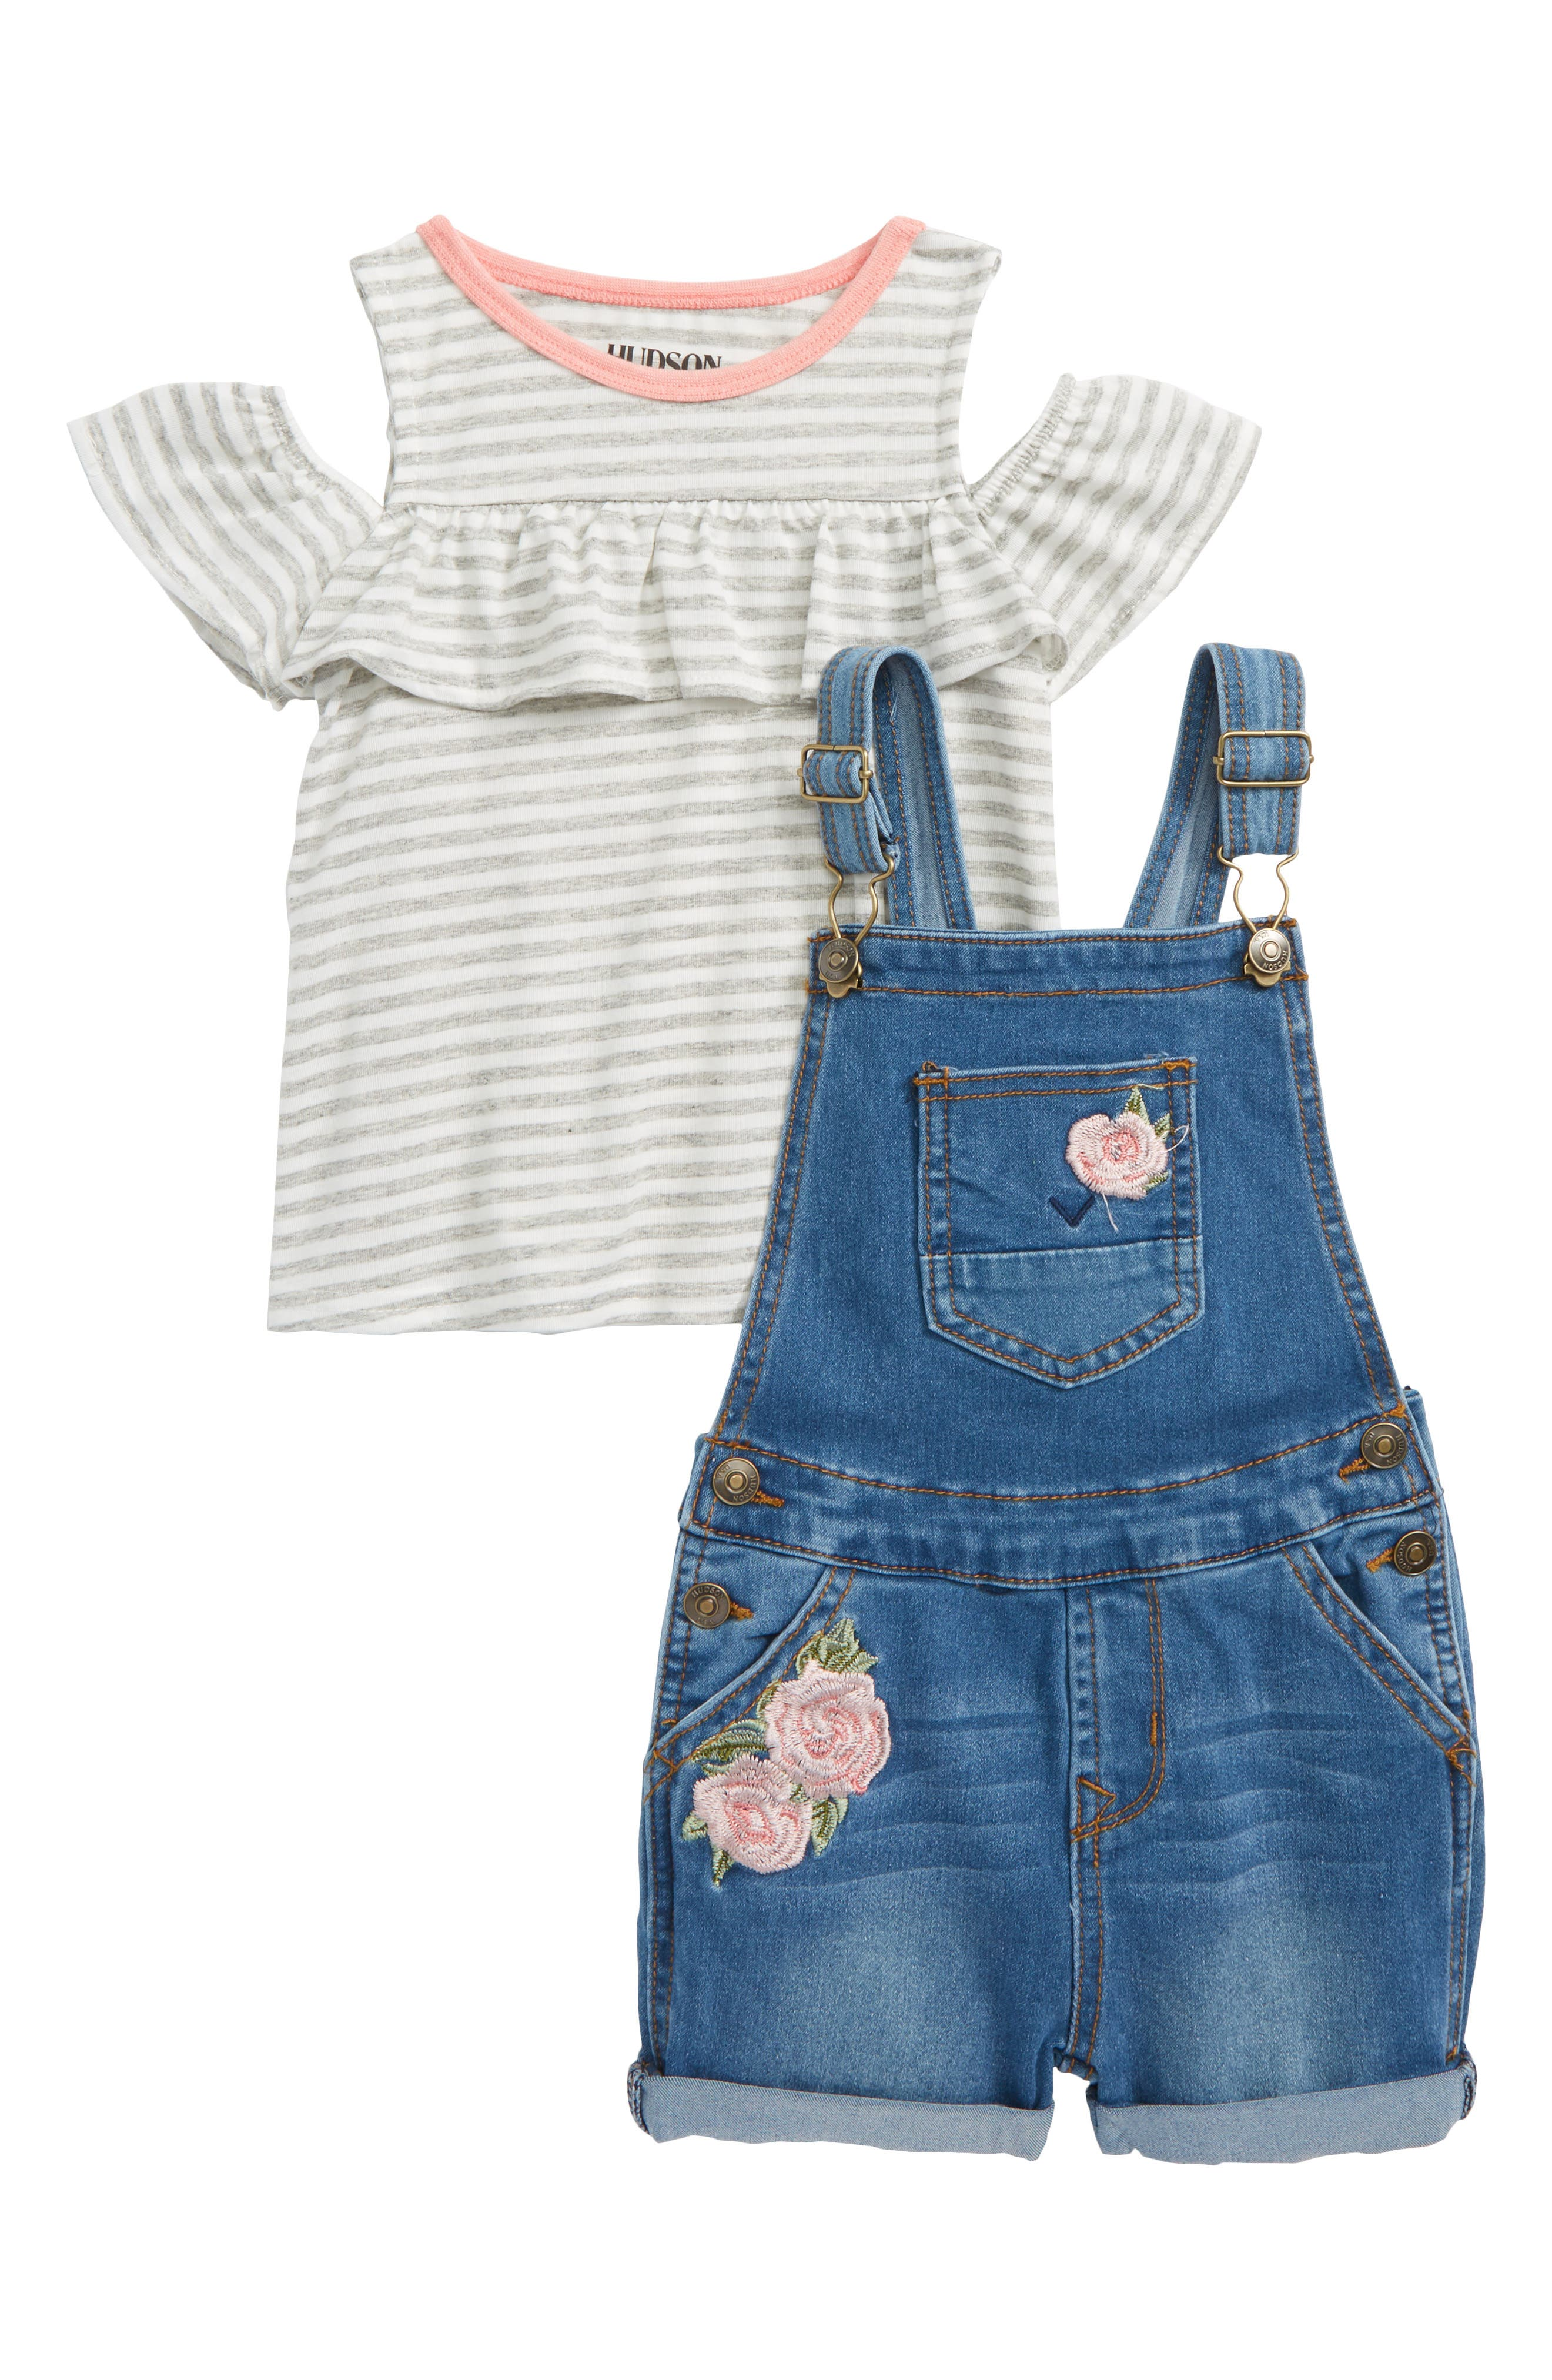 Overalls & Tee Set,                             Main thumbnail 1, color,                             Whatever Wash